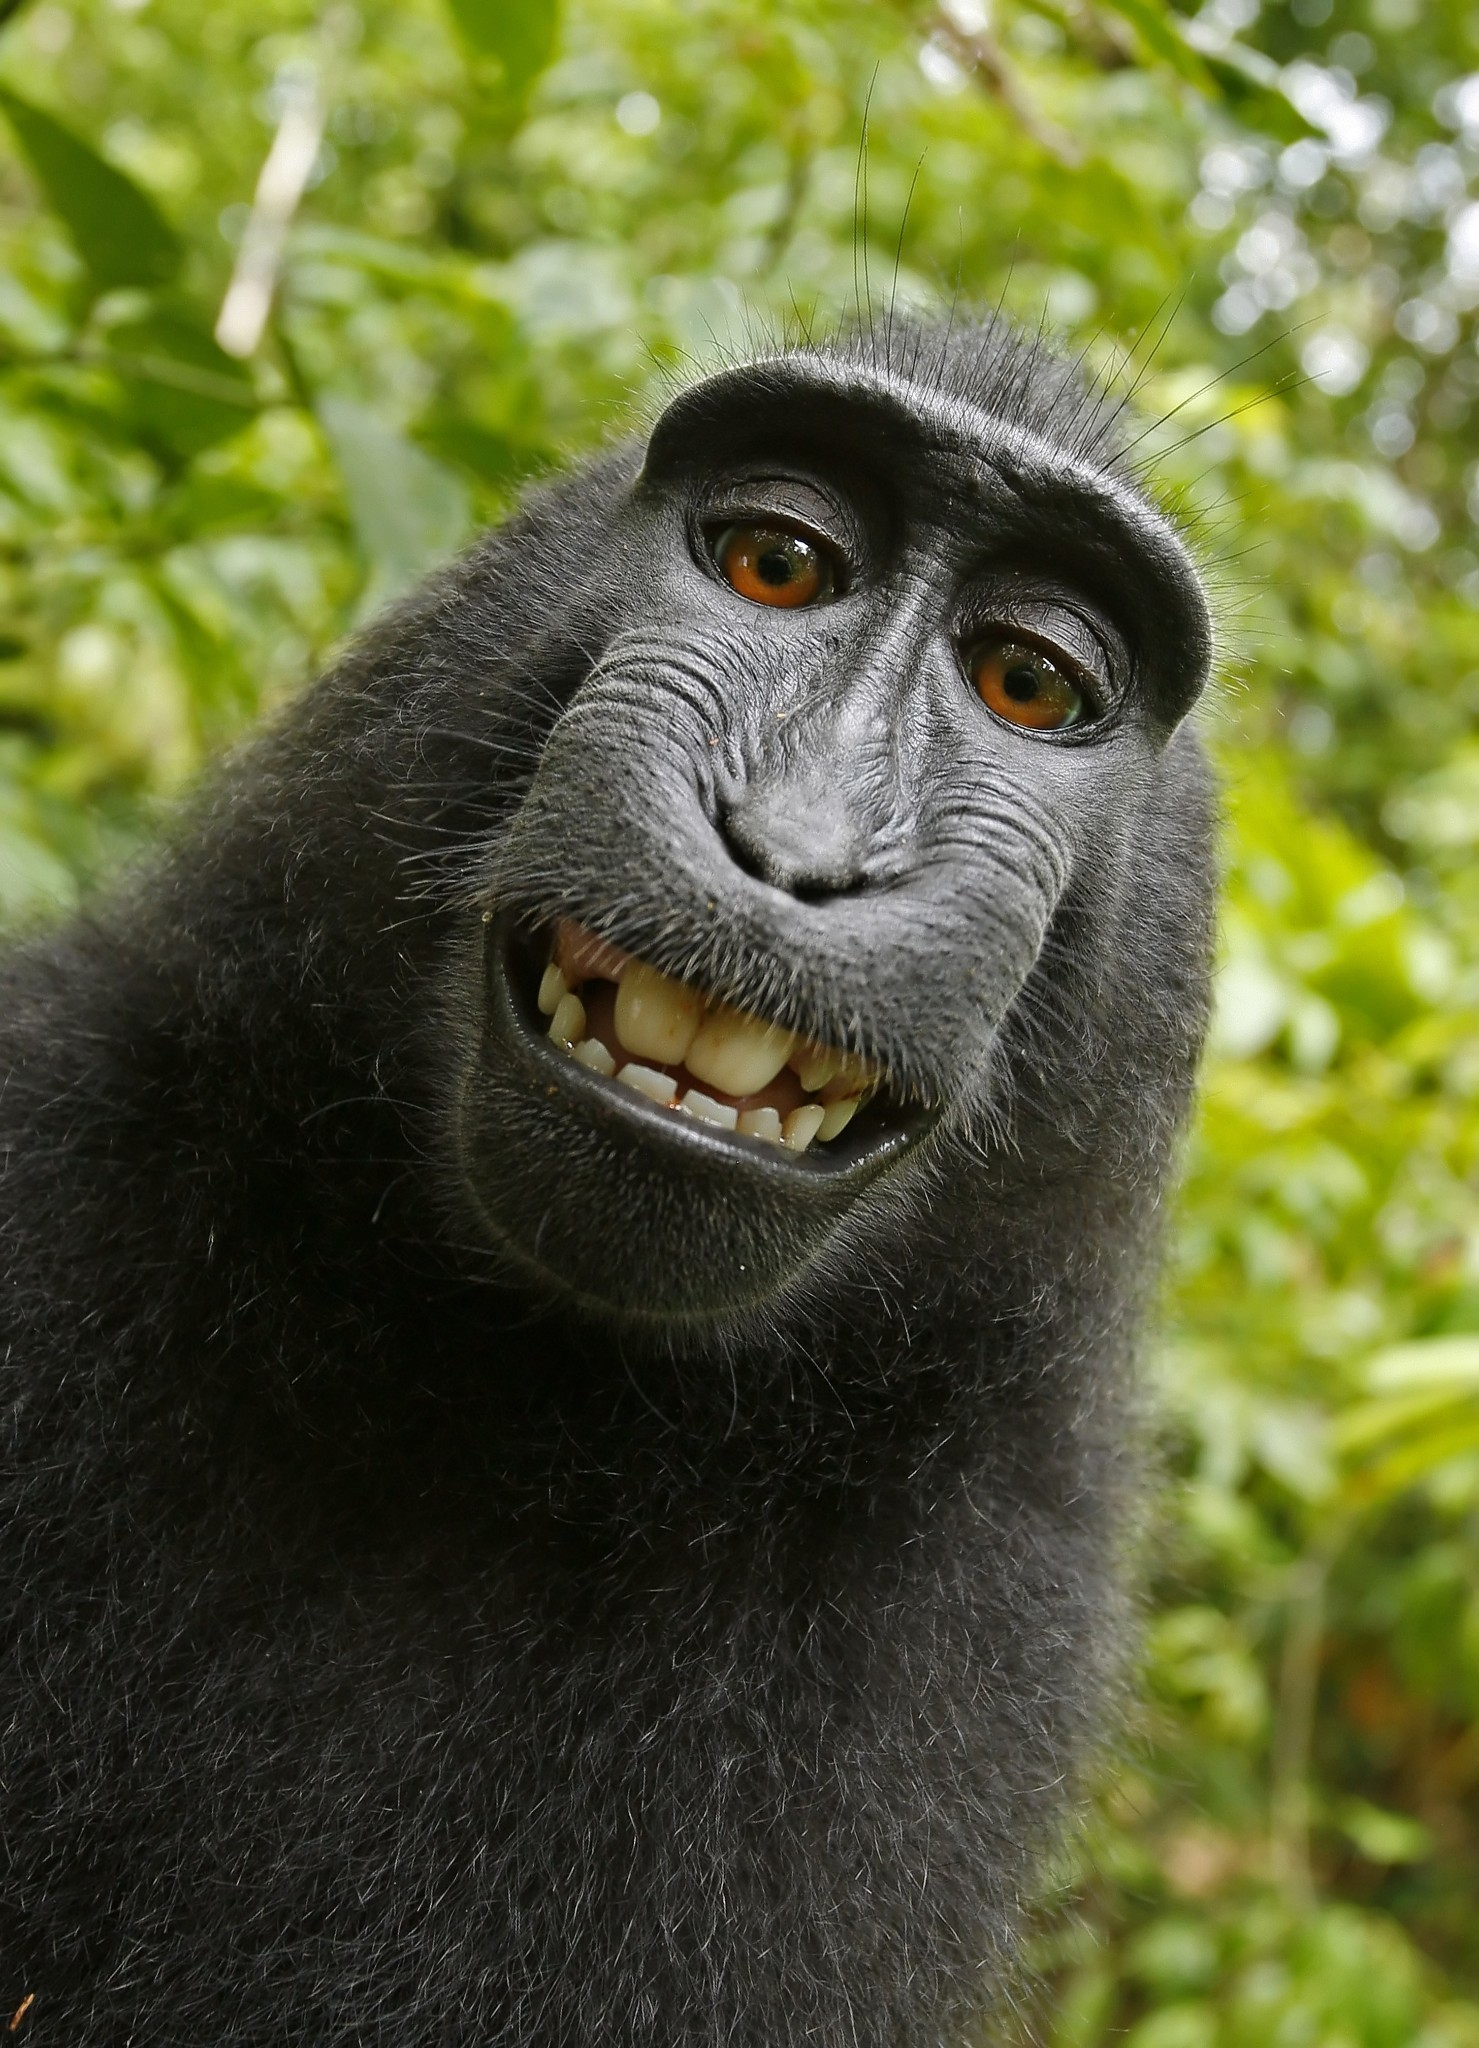 The 'Monkey Selfie' Monkey Just Filed an Appeal